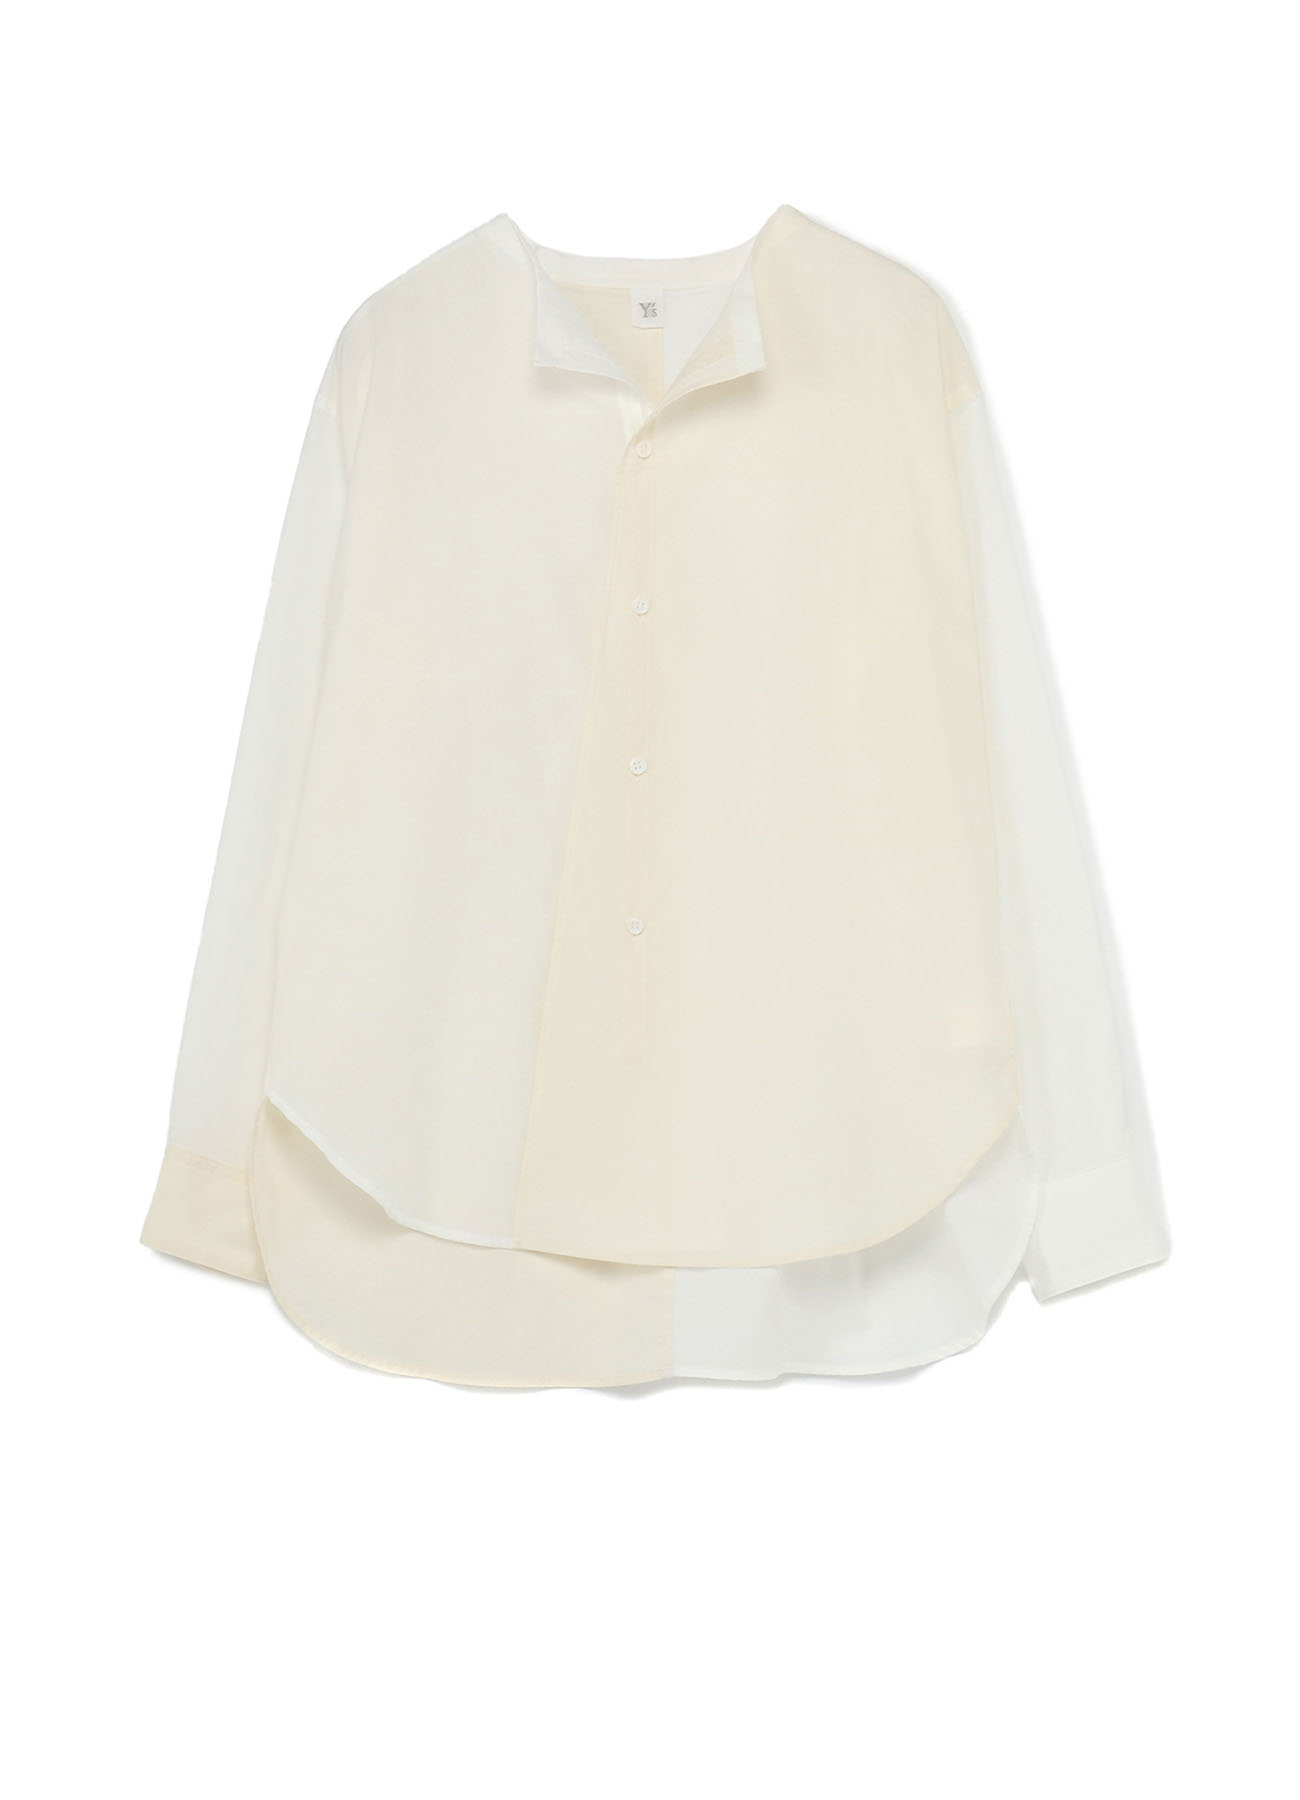 60 LAWN POWDER SNOW WASHER CUT OUT COLLAR BLOUSE